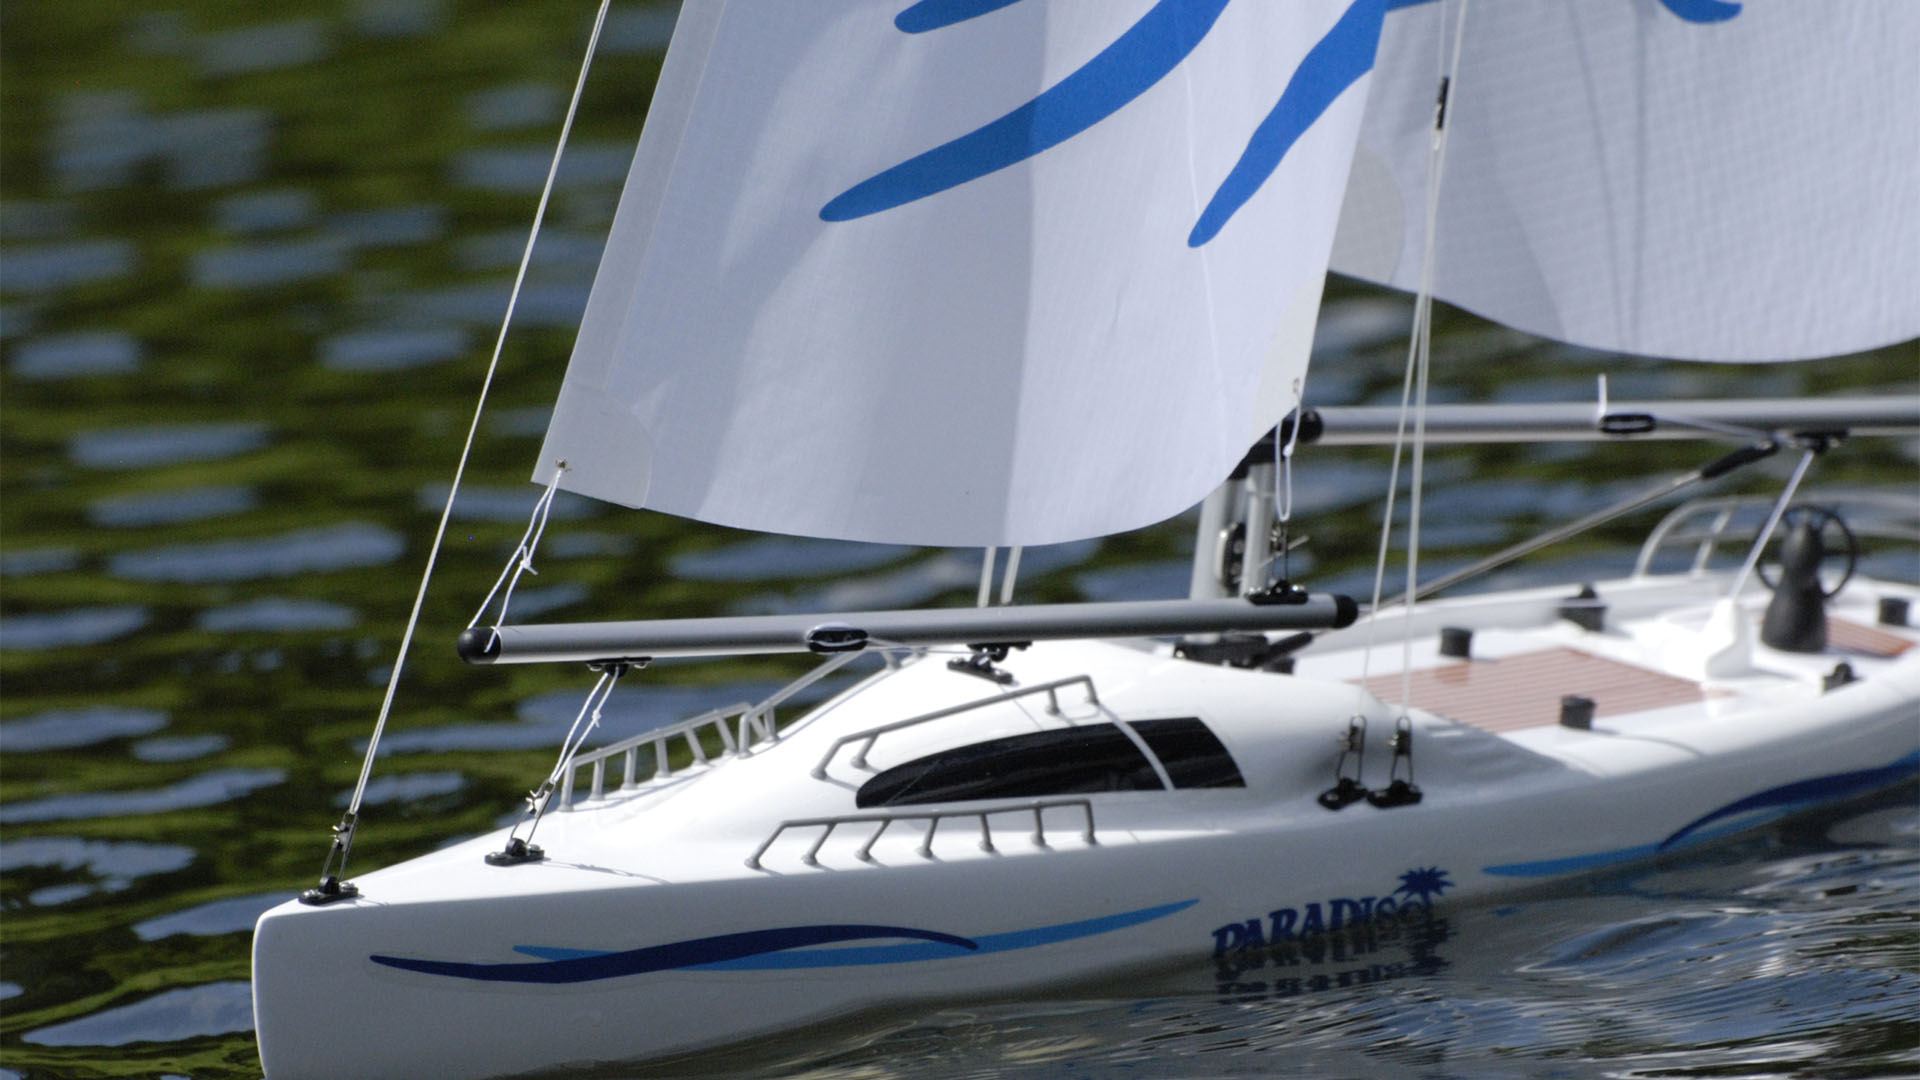 rc sailing boats for sale with 576473 How Get Started Rc Sailboats on Hms Serapis together with Riva Ariston Lady Lina Superyacht Tender additionally The Stern View Of The Adastra Superyacht At Dock furthermore Watch also Chris Craft Racing Runabout For Sale.